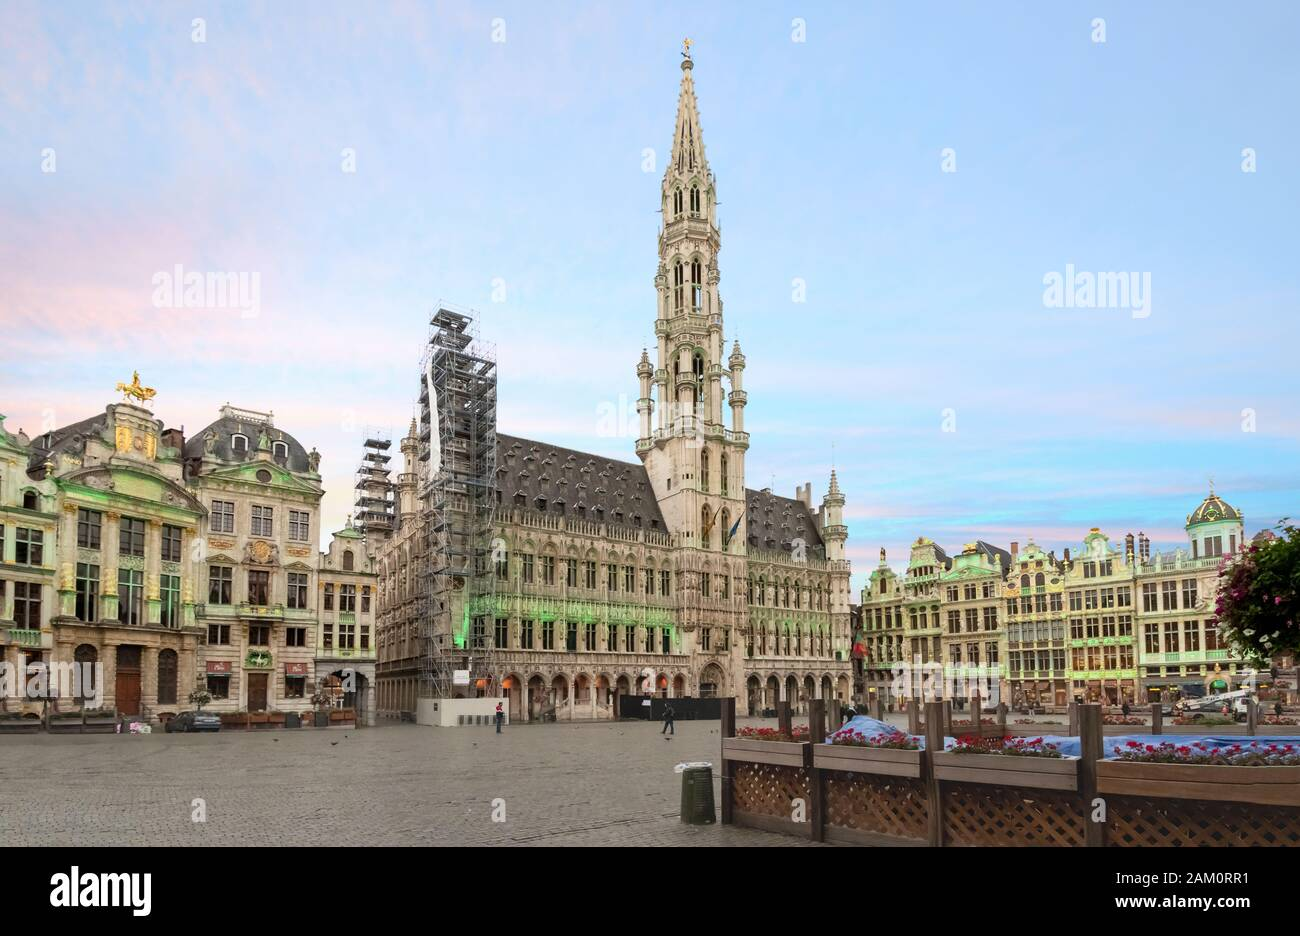 The Grand Place Markt Square in the old town center of Brussels, Belgium, early in the morning. Stock Photo